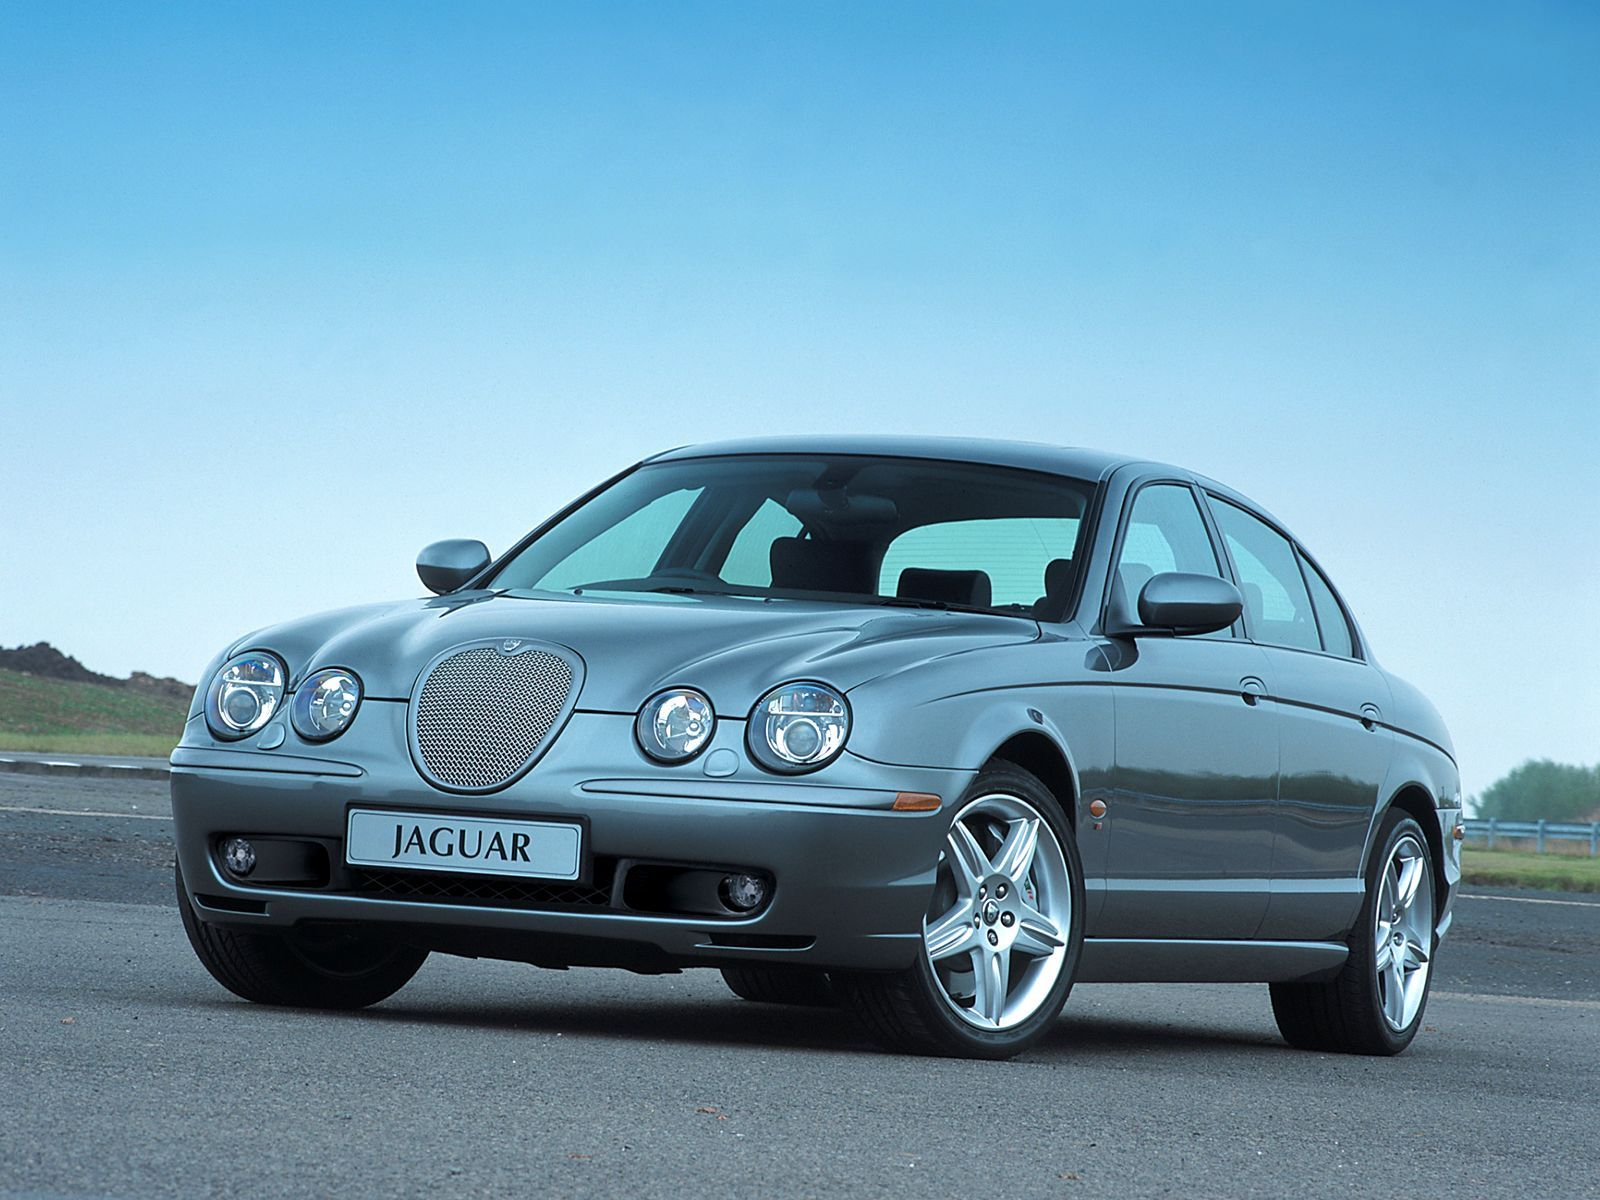 Maxresdefault together with Hqdefault likewise D S Type Fuel Pump Problem Lincoln Ls Fuel Pump Access Holes together with Oemexteriorfront additionally Hqdefault. on 2004 jaguar s type